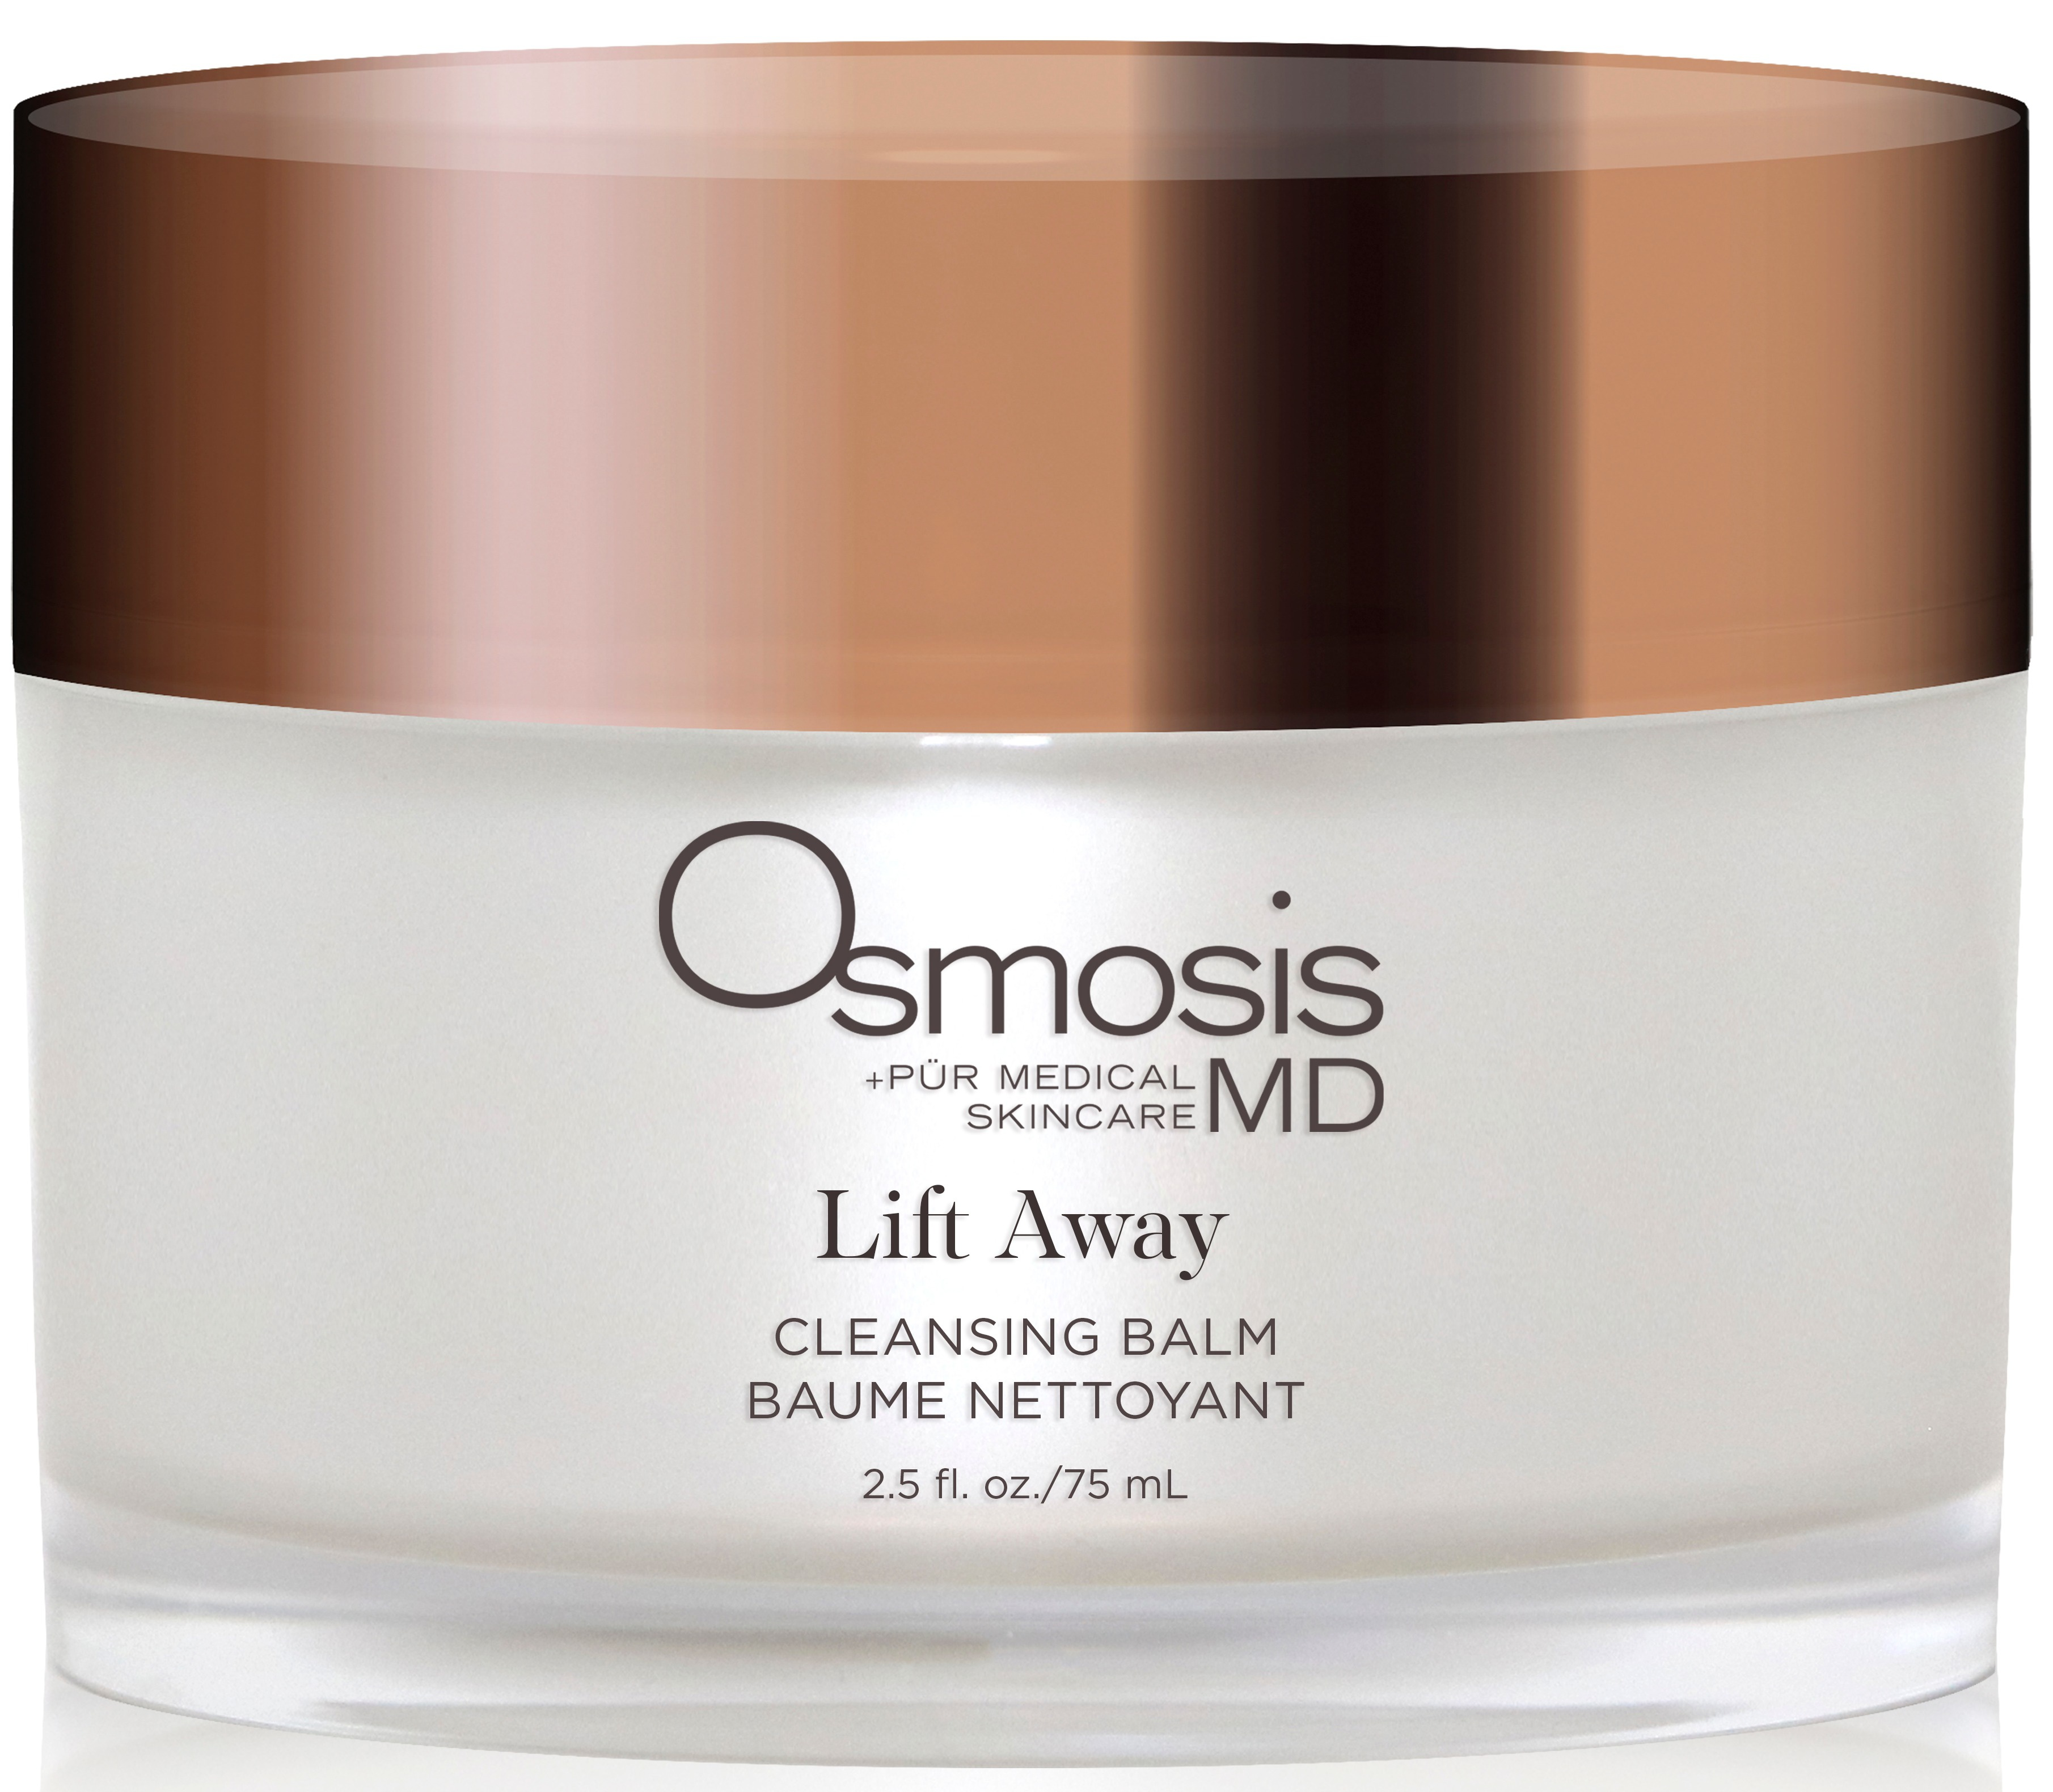 osmosis skincare Lift Away Cleansing Balm